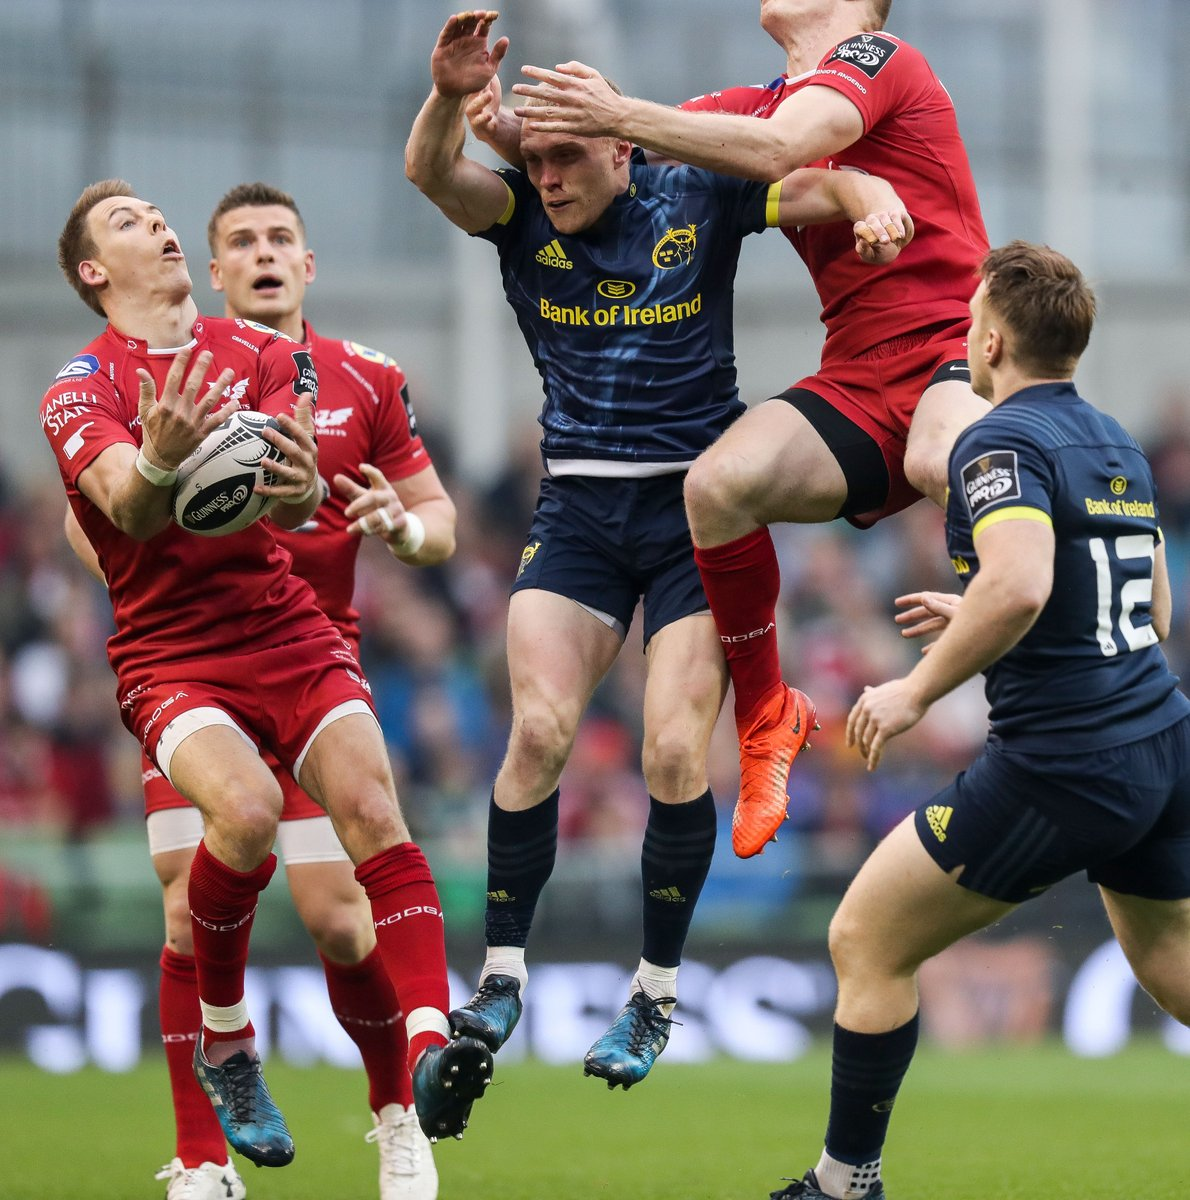 That's more like it,c'mon @Munsterrugby Still 40 minutes to take this back #MunsterRising #MUNVSCA https://t.co/kobwLVlzqN